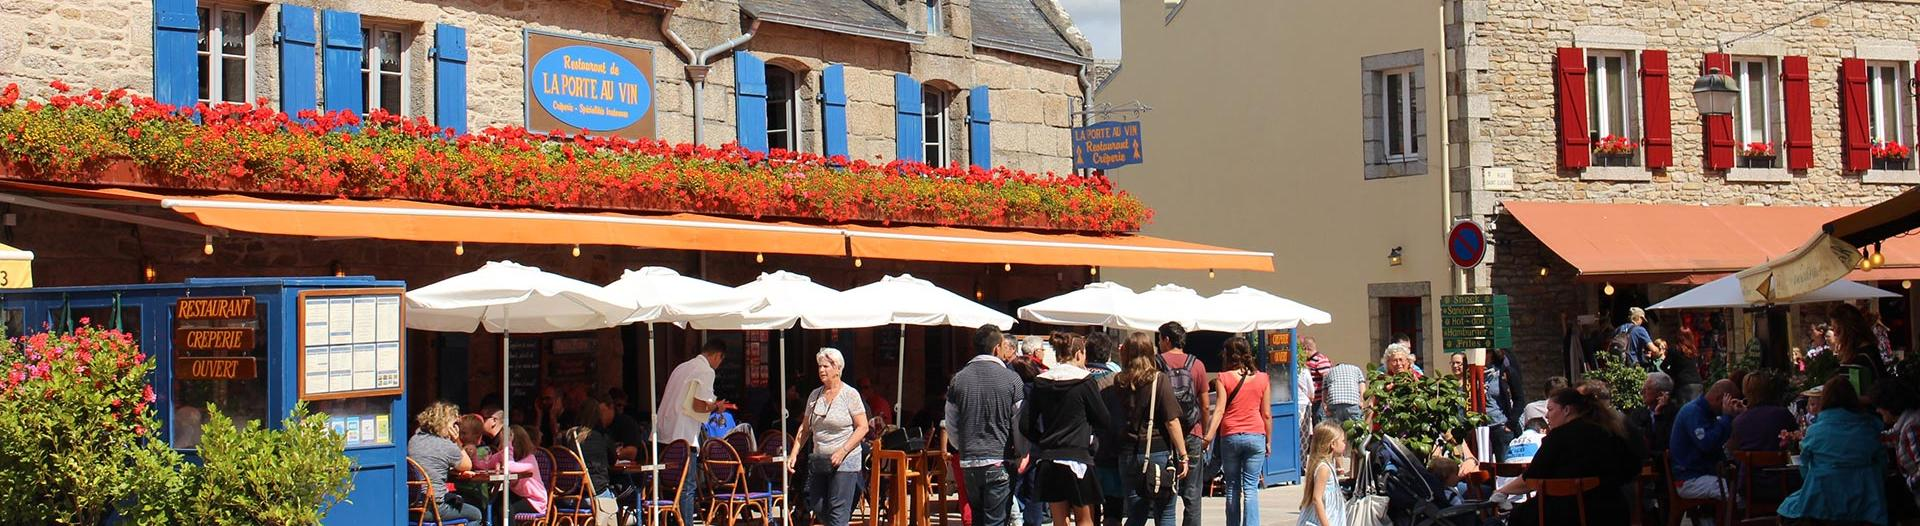 slider-ville-close-concarneau-finistere-bretagne